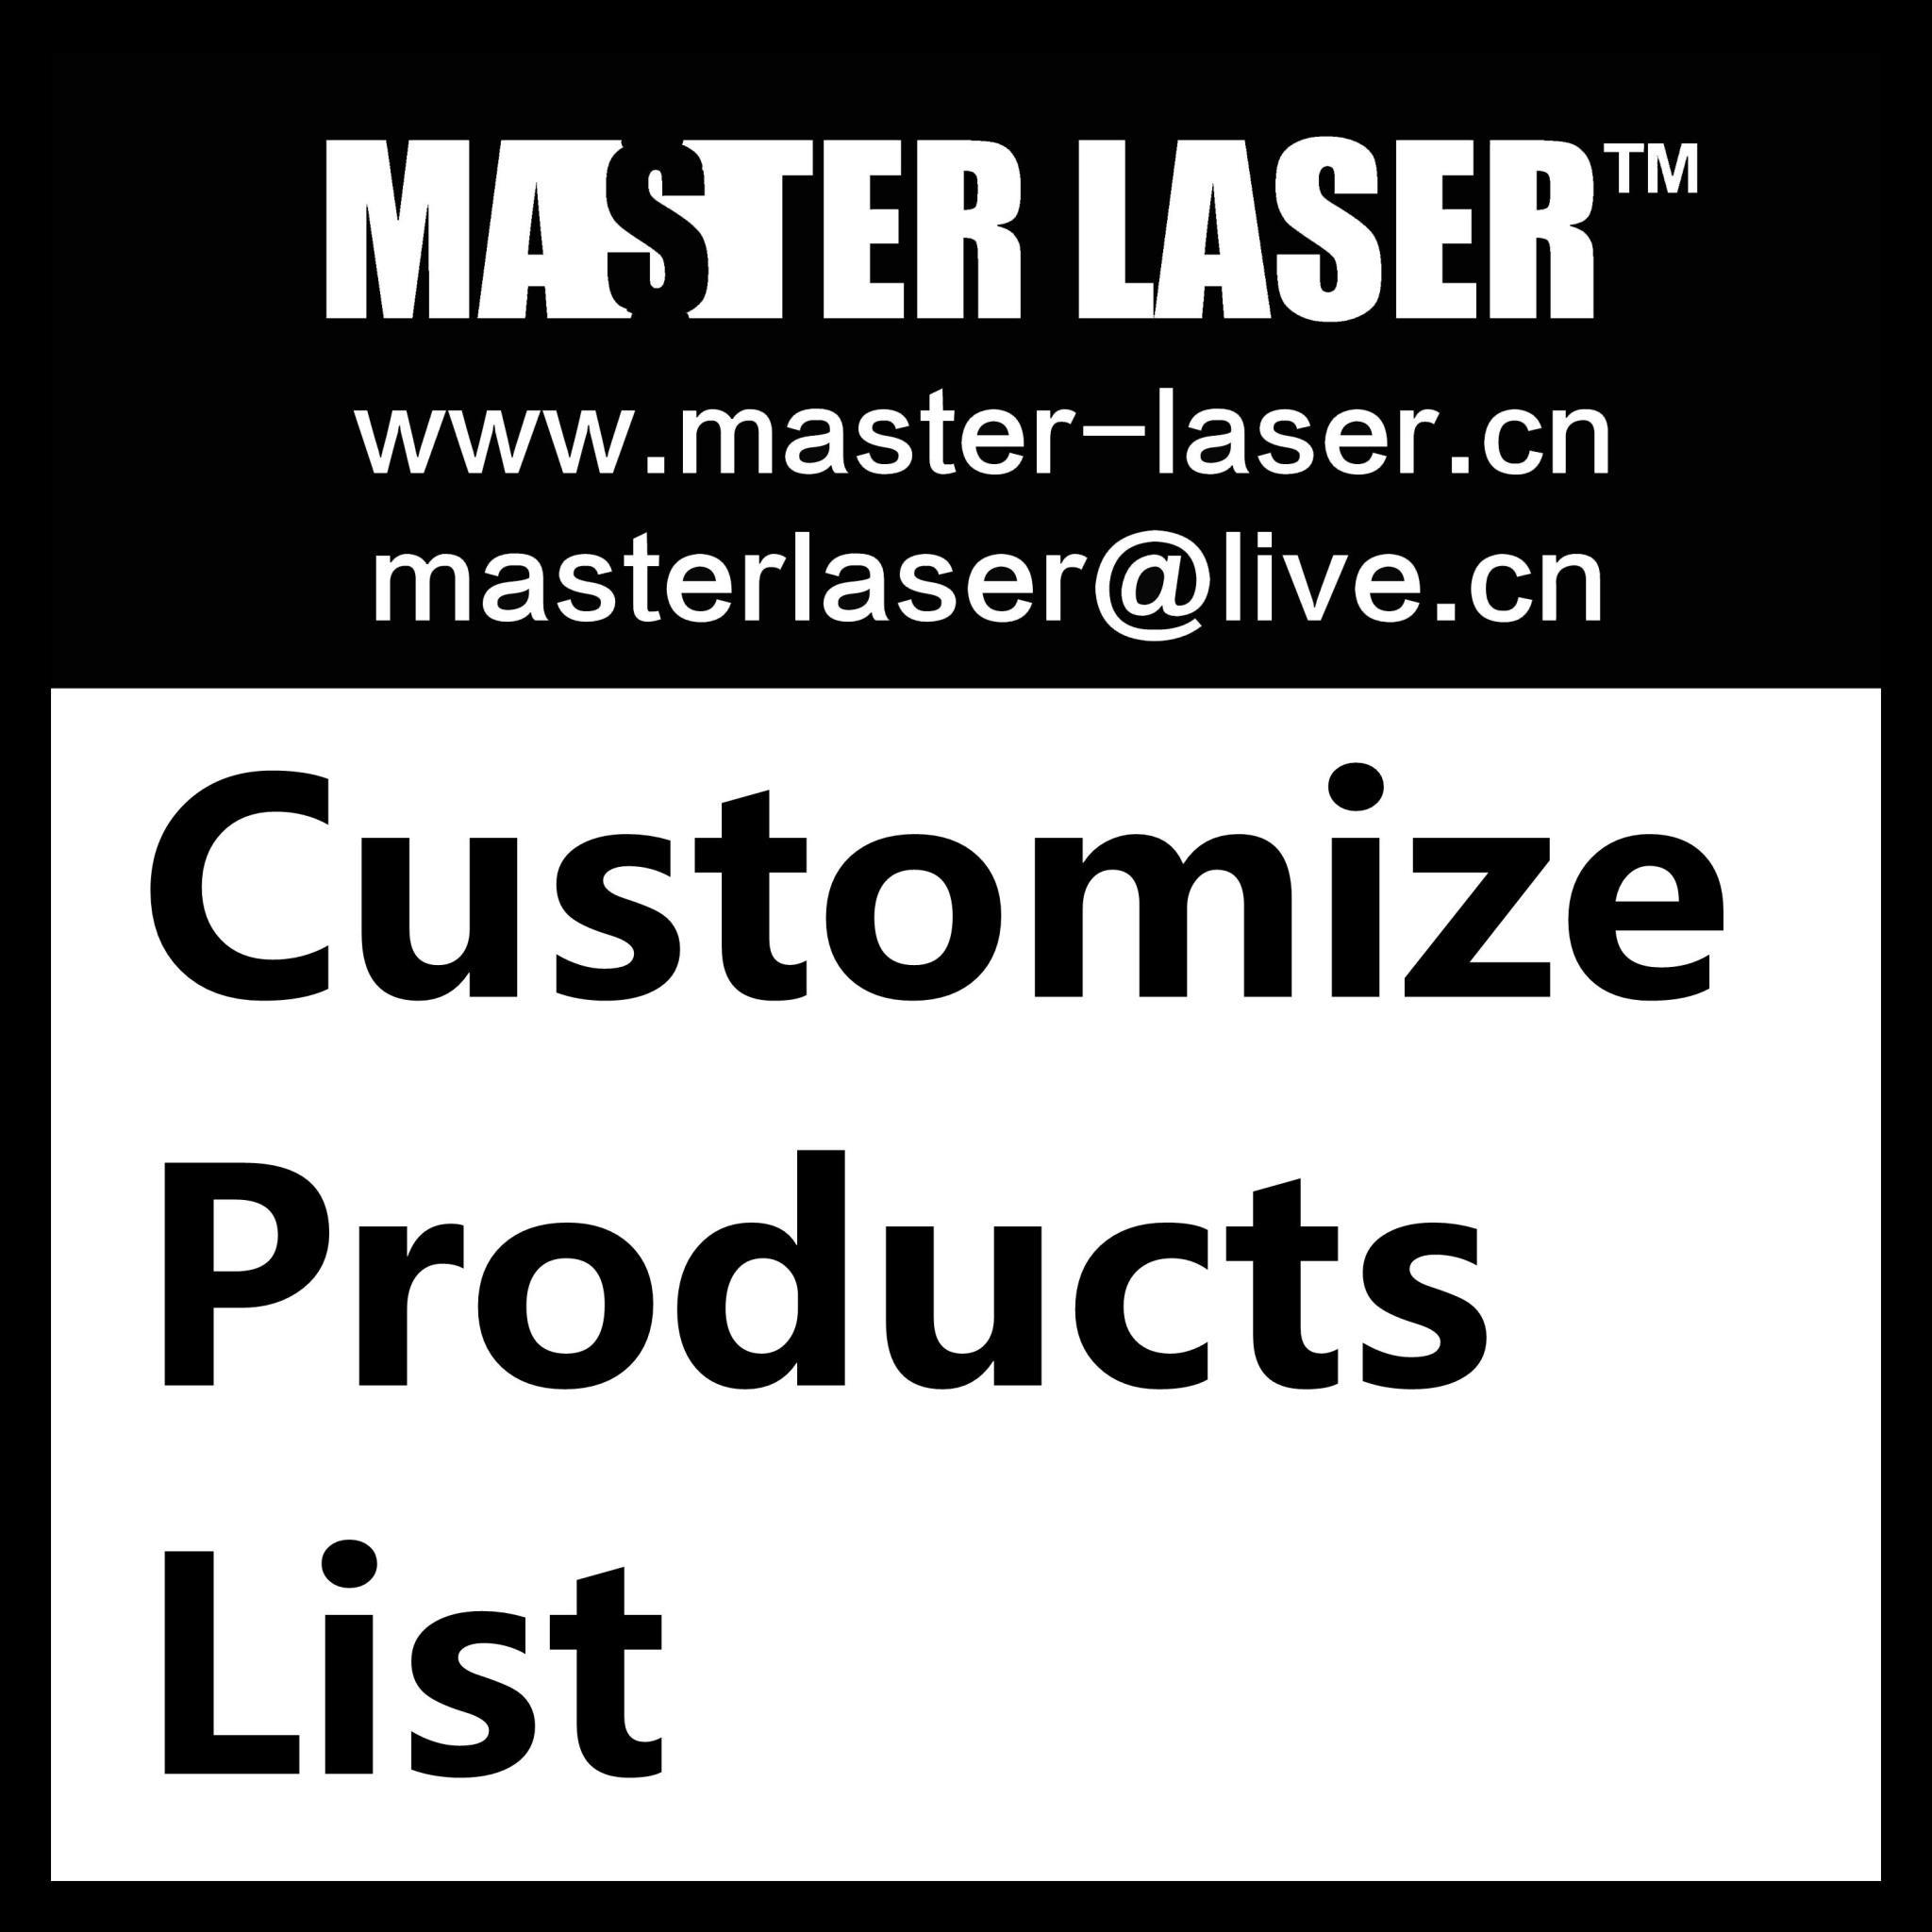 Customized Orders 007 Master Laser